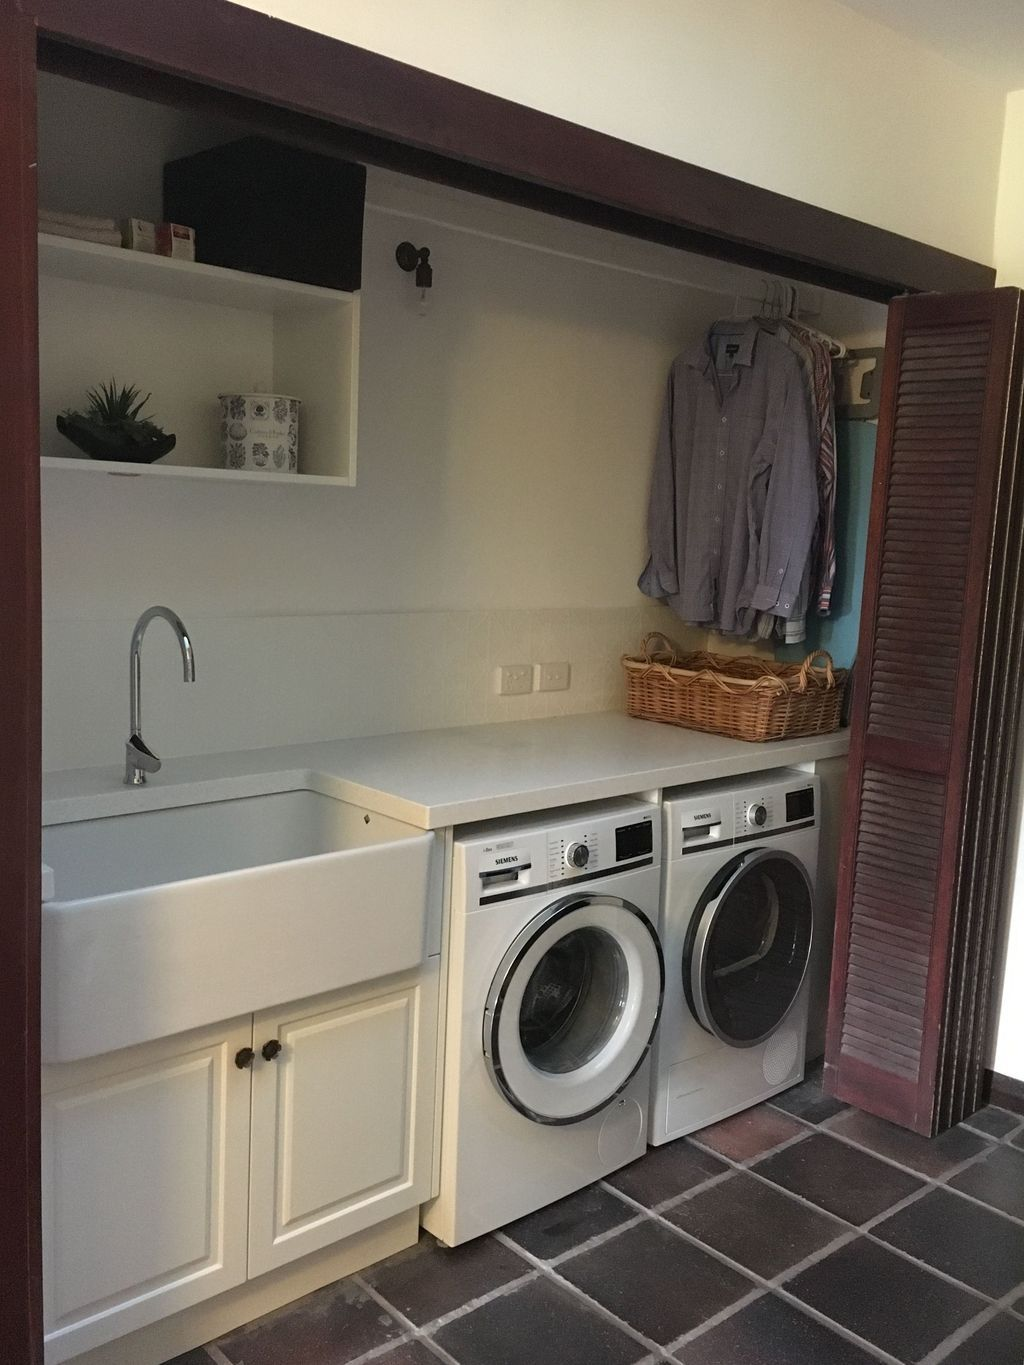 30+ Popular Farmhouse Laundry Room Design Ideas images